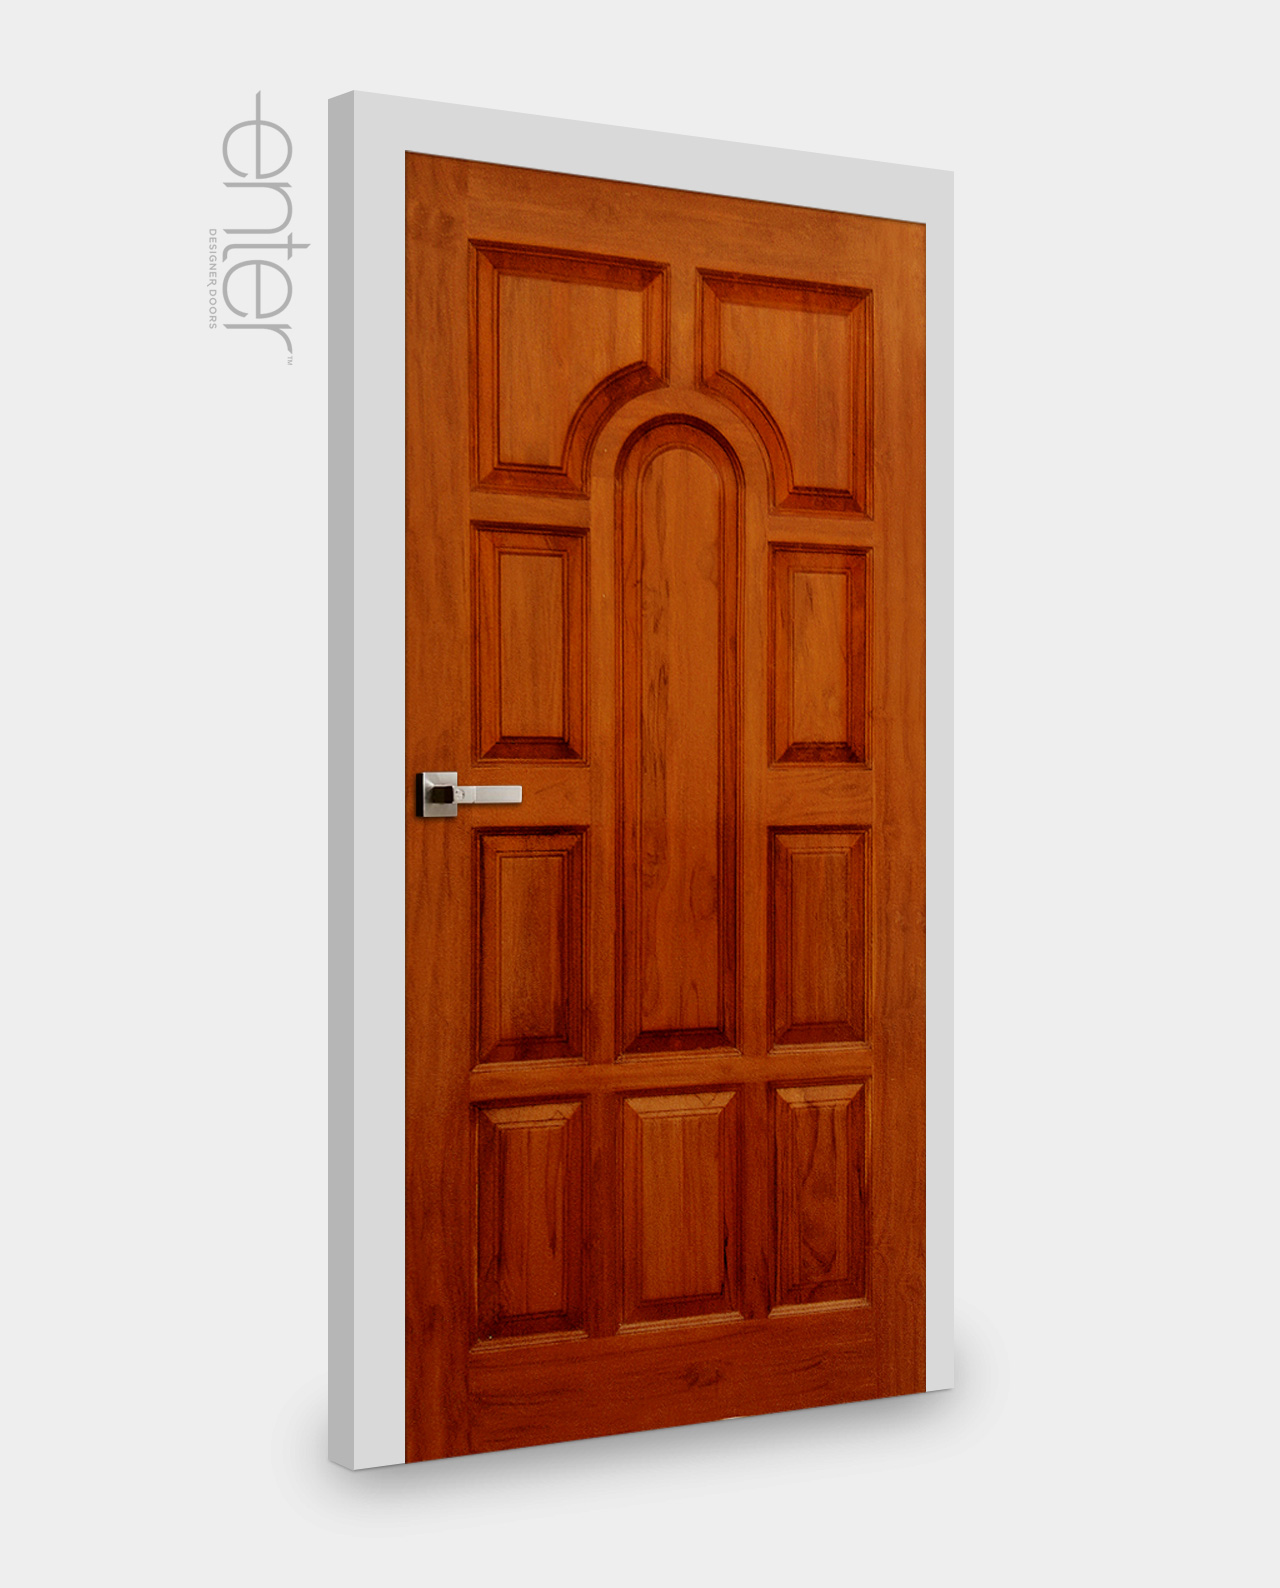 Previous; Next  sc 1 st  JJ Craft & NTW06 u2013 Natural Teak Door u2013 JJ Craft